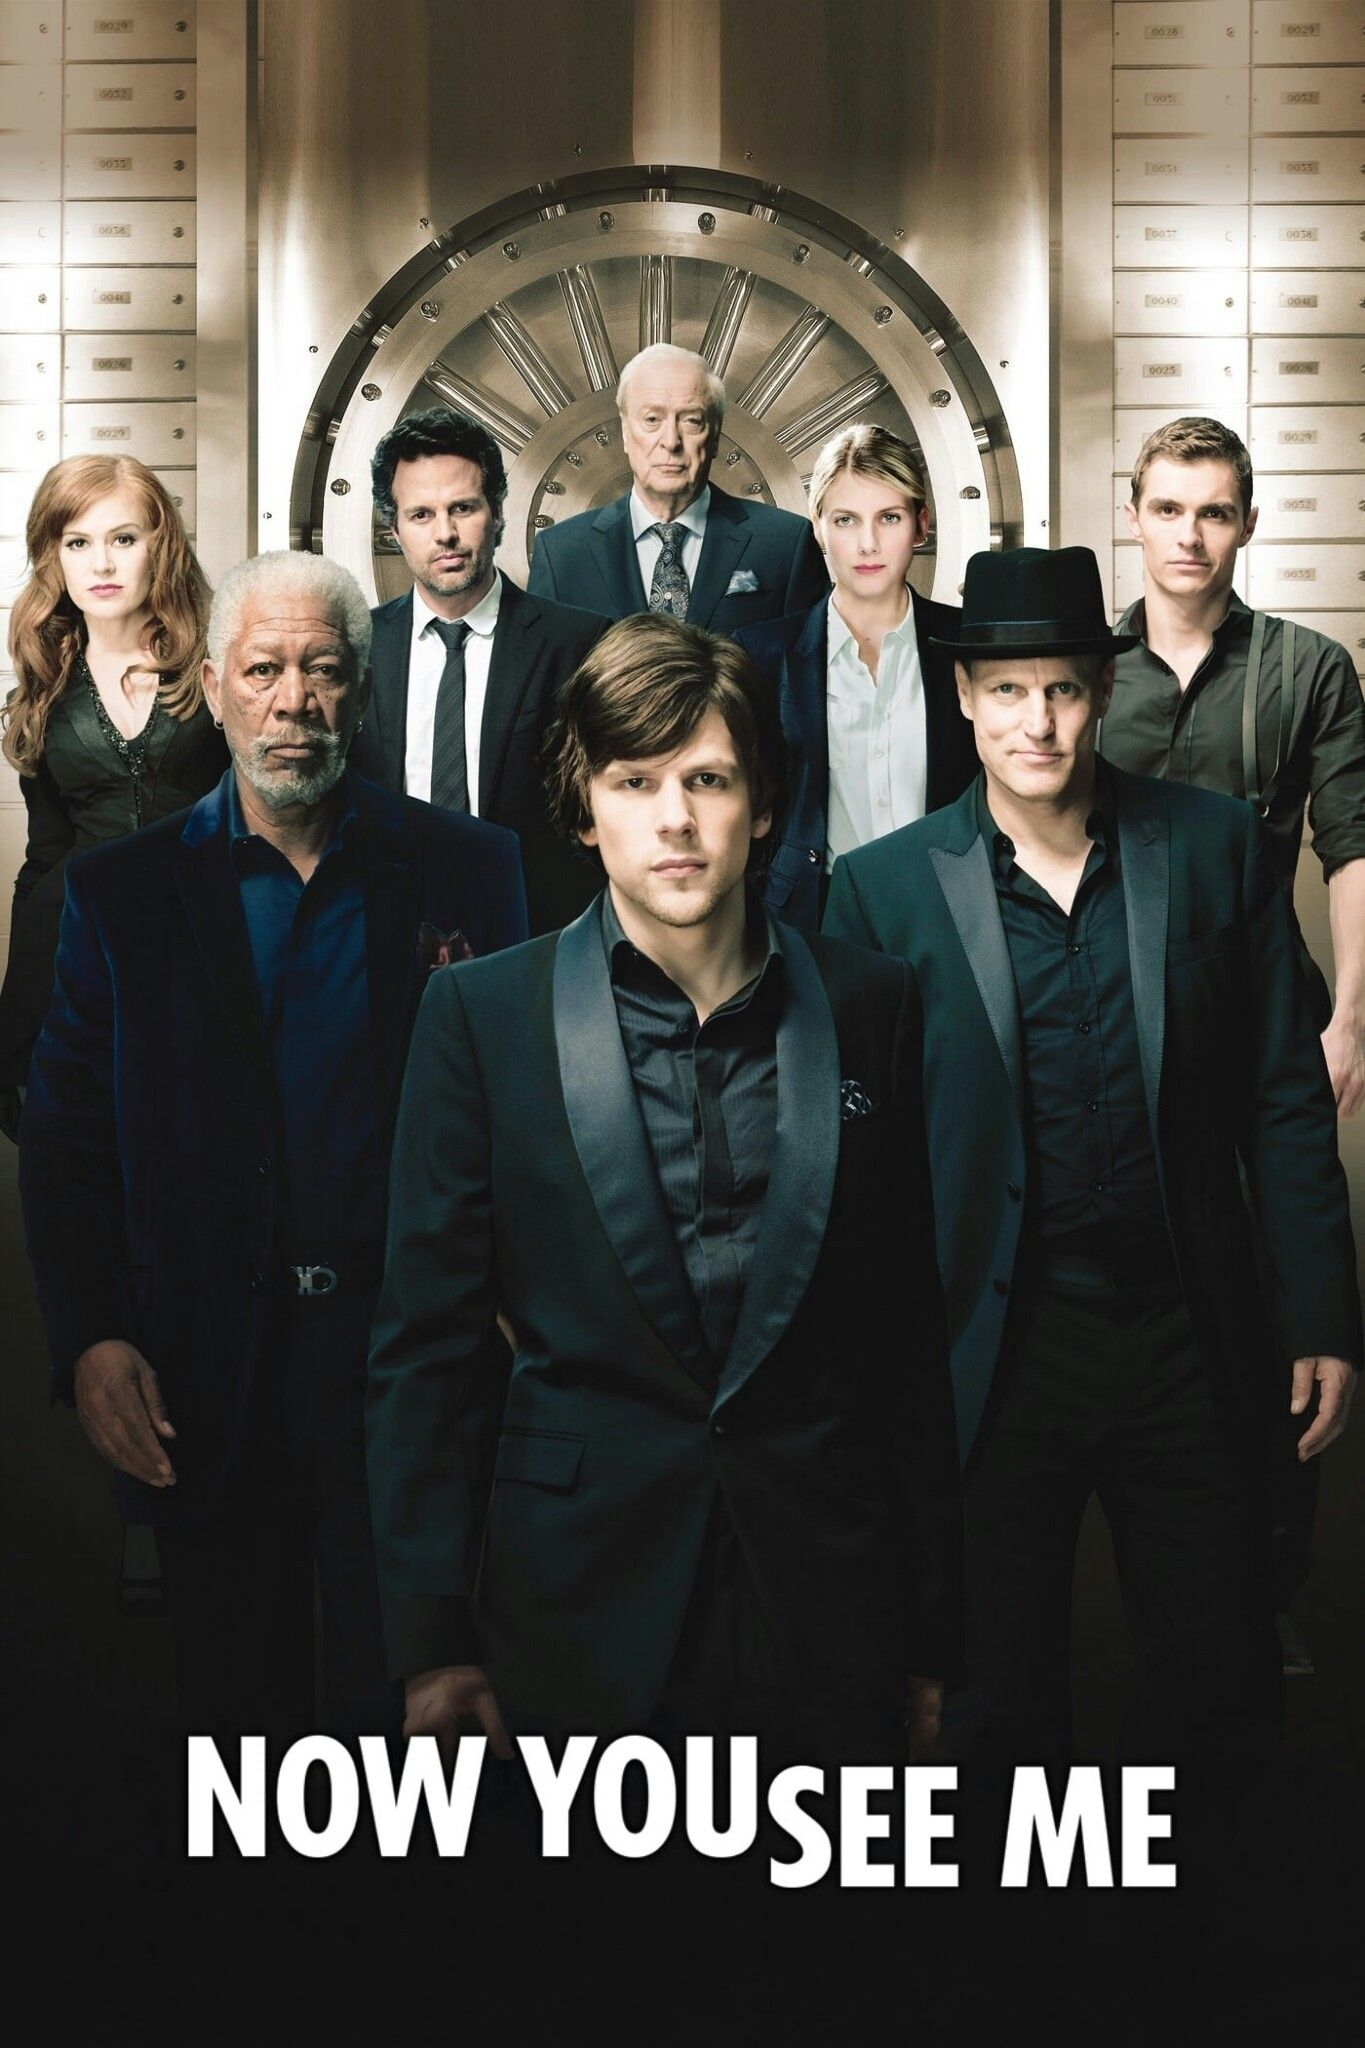 Nonton Now You See Me : nonton, Movie, Poster, Fantastic, Posters, #SciFi, #Horror, #Actio…, Movies, Online, Free,, Movies,, Streaming